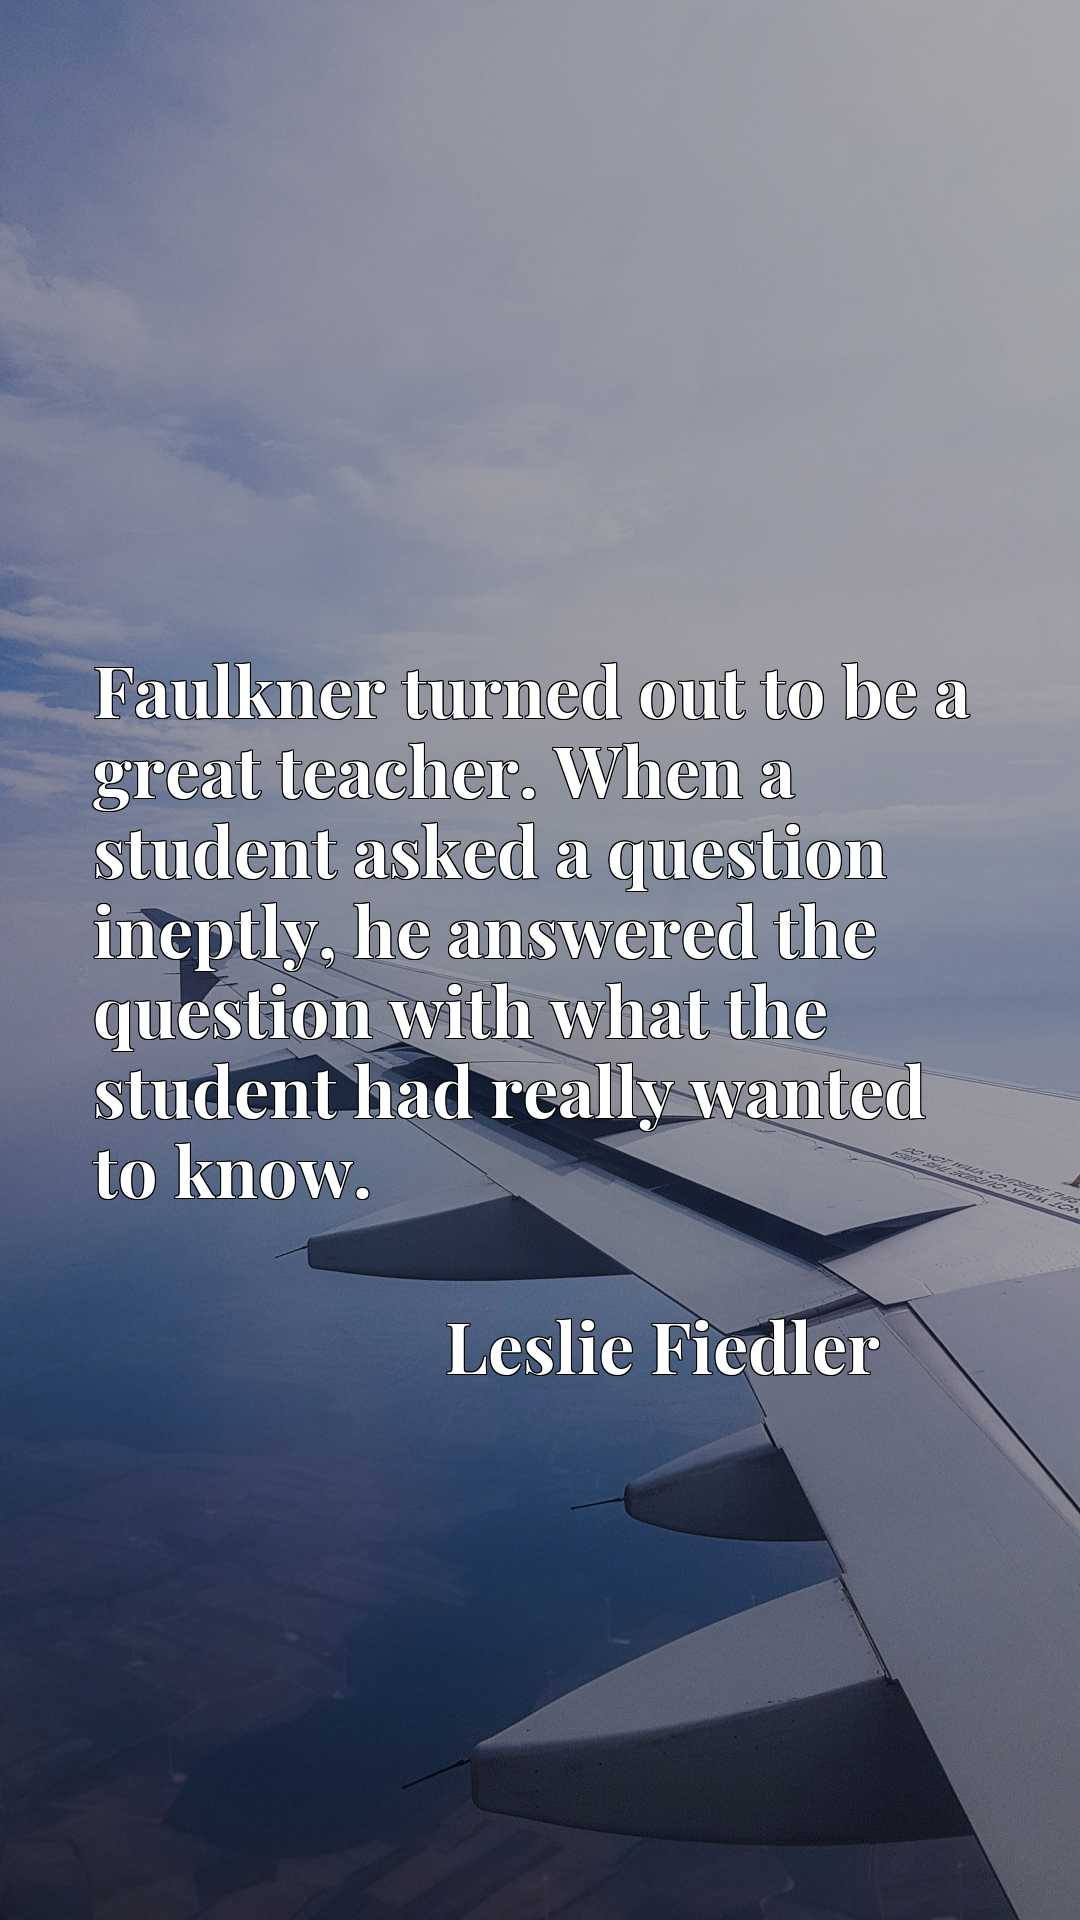 Faulkner turned out to be a great teacher. When a student asked a question ineptly, he answered the question with what the student had really wanted to know.